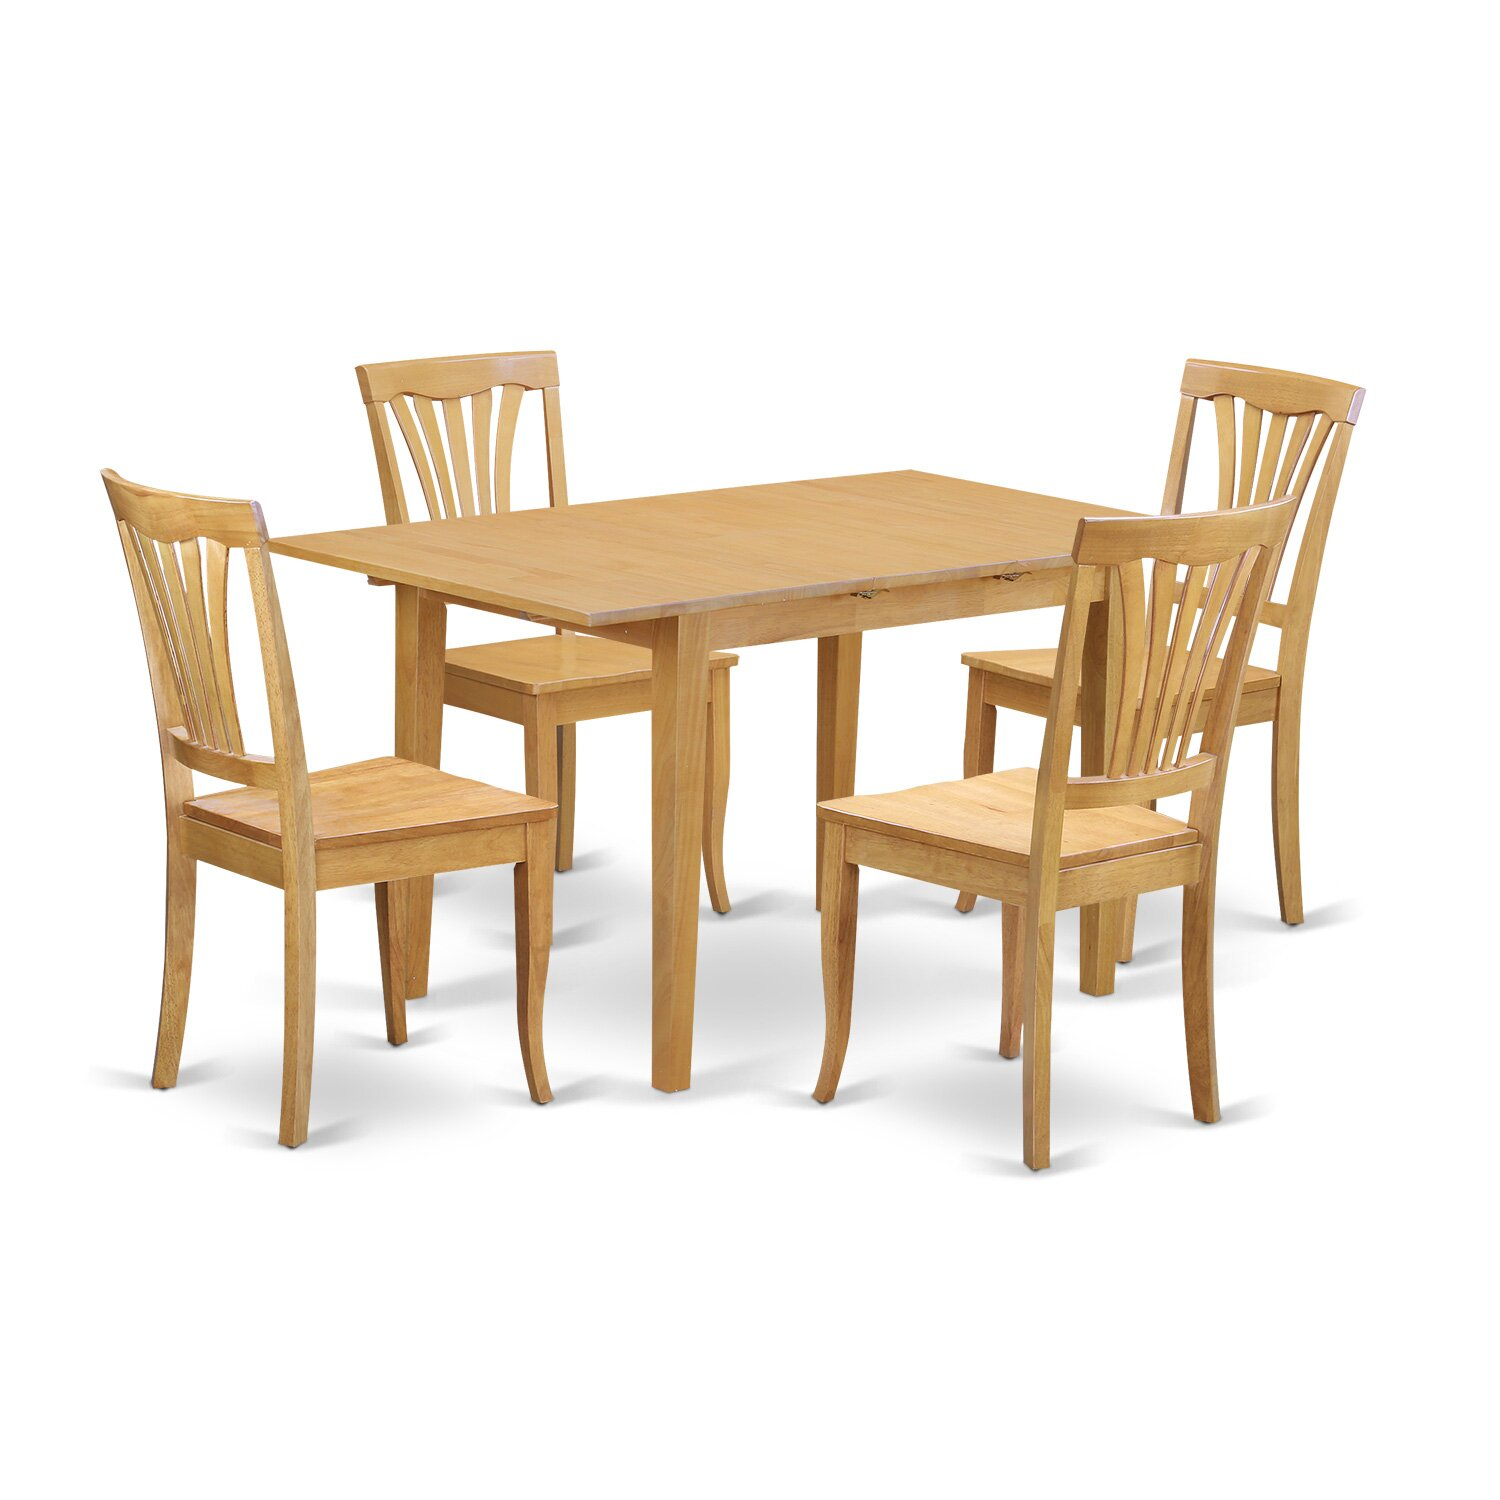 East west norfolk 5 piece dining set wayfair for Kitchen dining sets